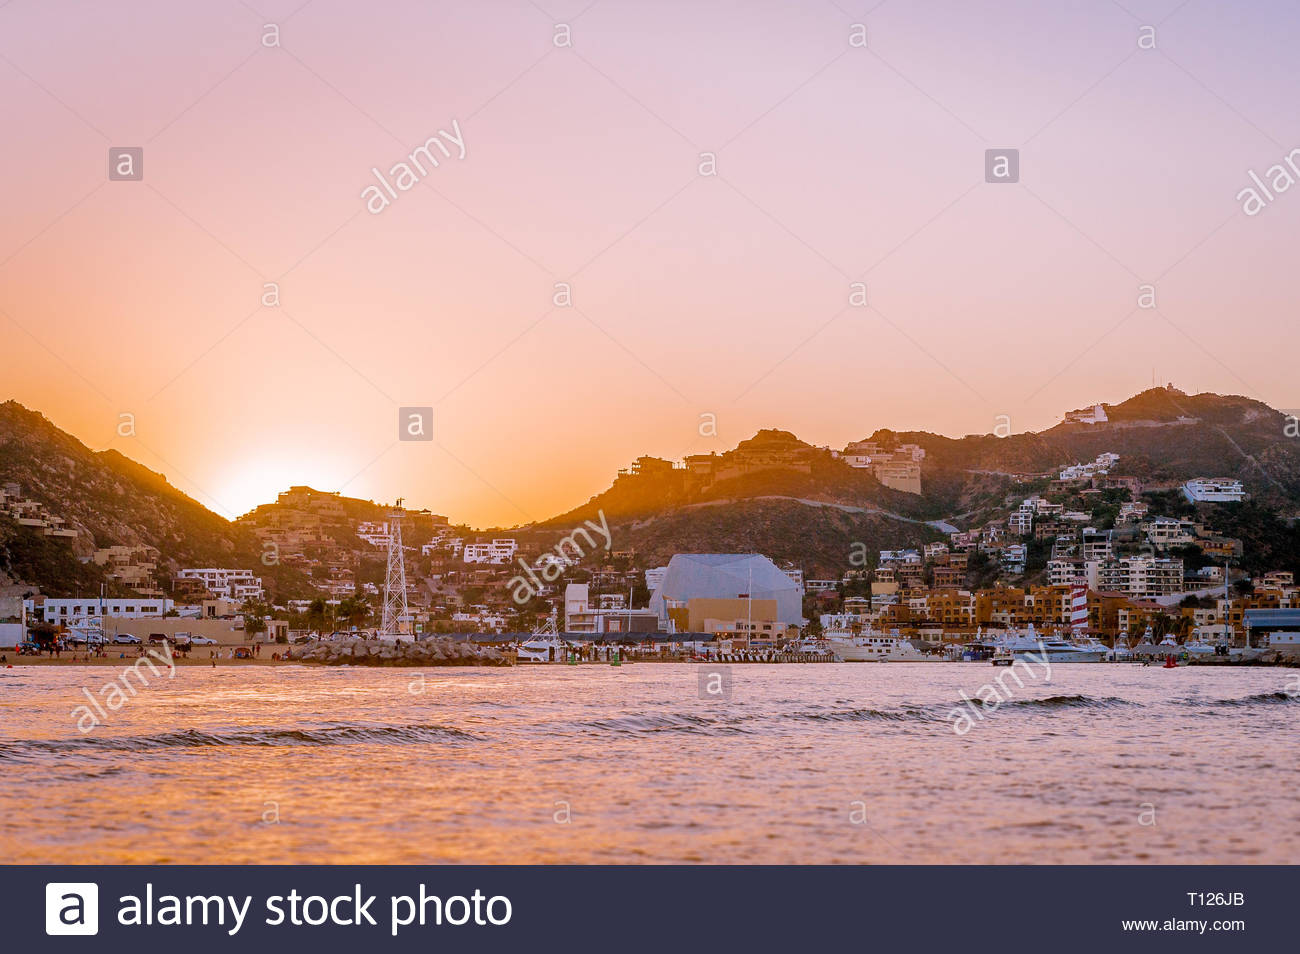 Sunset over Cabo San Lucas as seen from the water - Stock Image